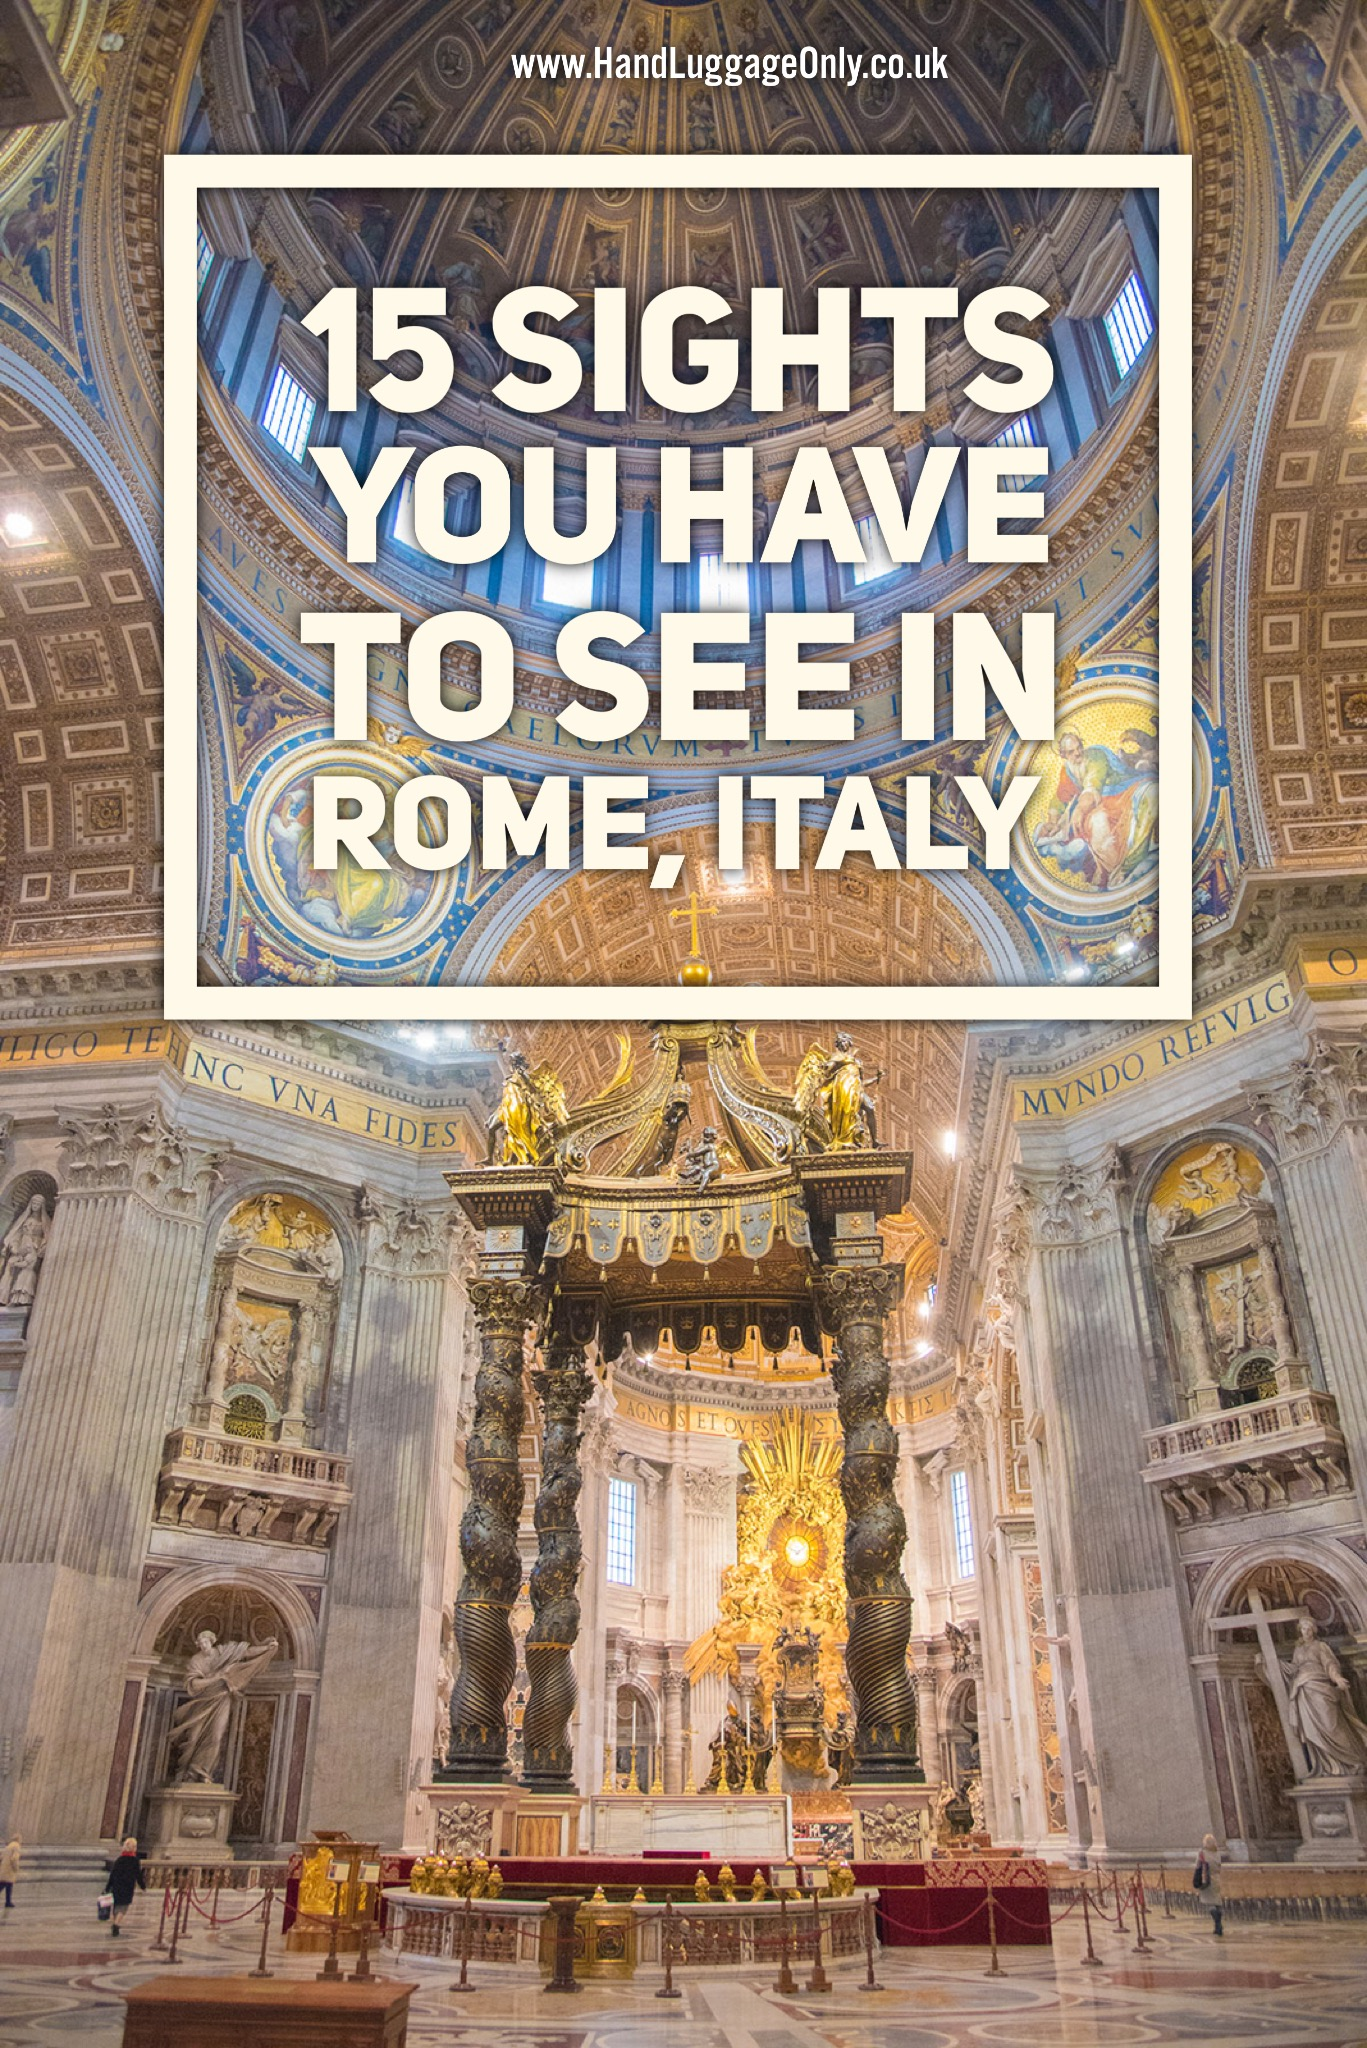 15 Sights You Have To See In Rome, Italy (2)